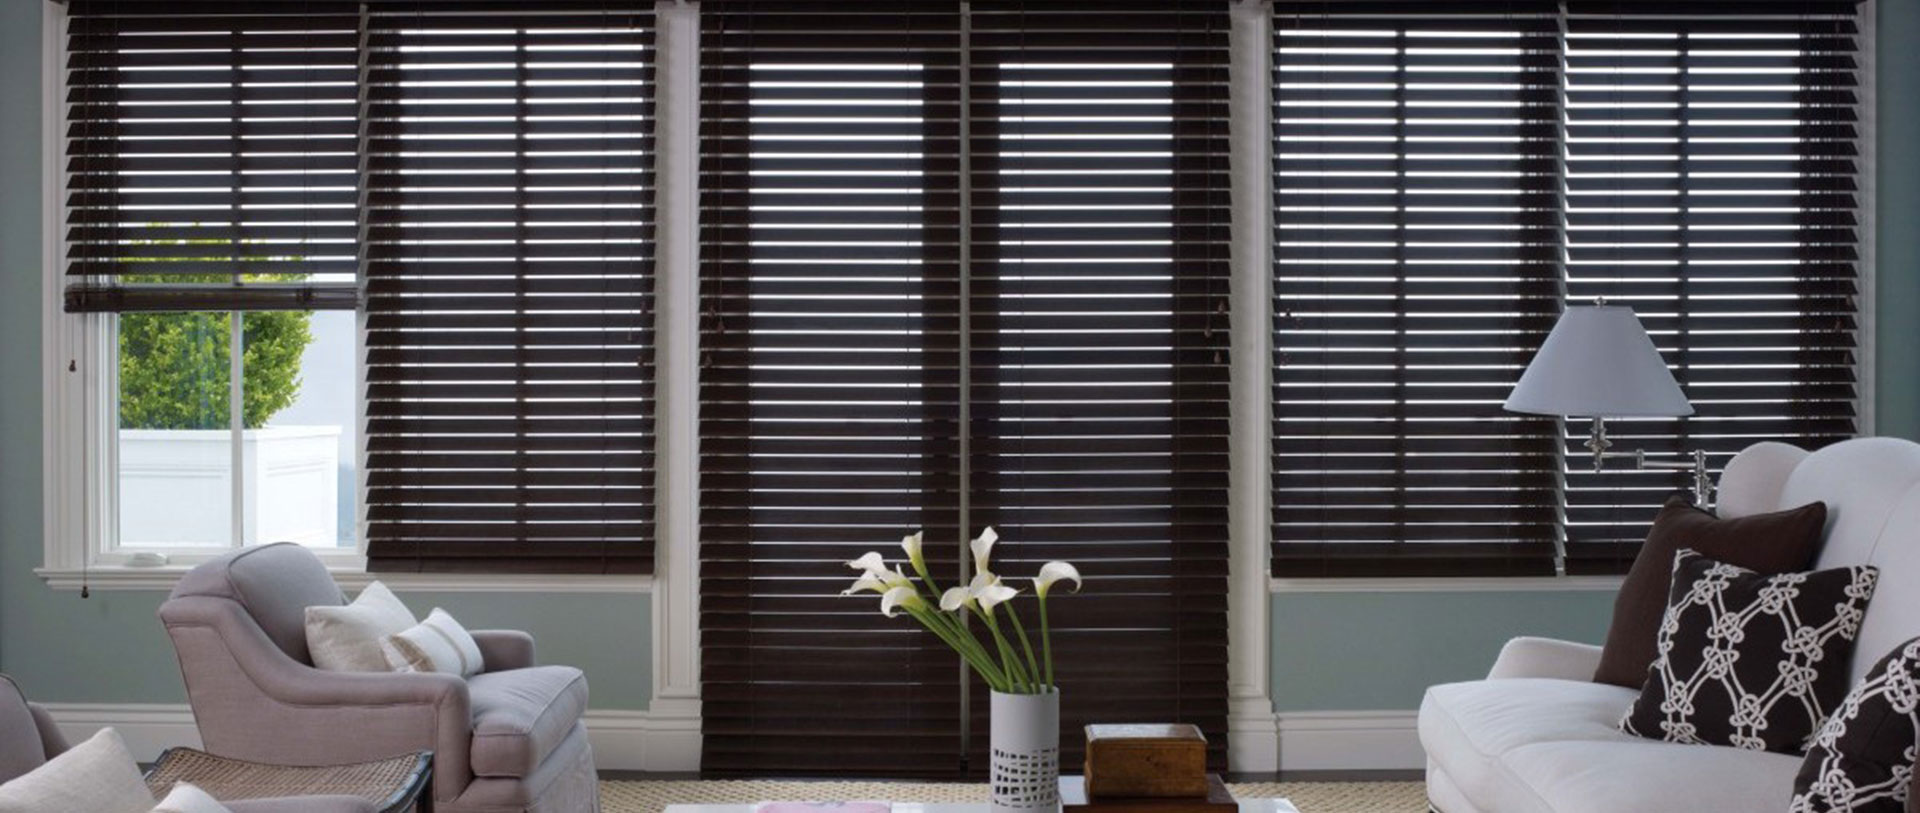 fury andrew ash blinds cheap pinterest wood philipson blind on pin gray by